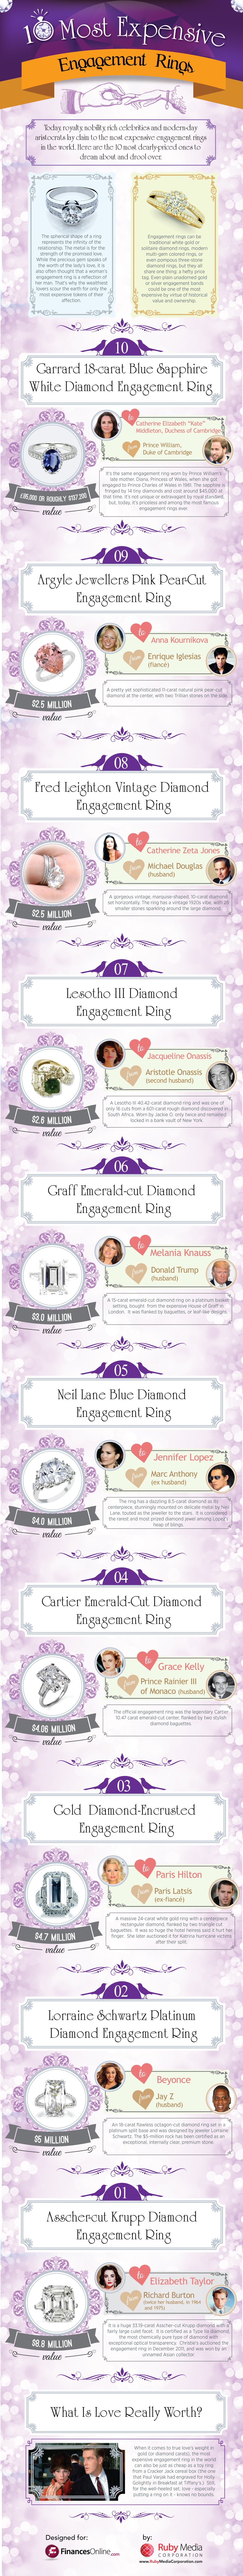 10 most expensive and beautiful engagement rings beyonce surprisingly is not the celebrity at the top most expensive wedding rings engagement rings